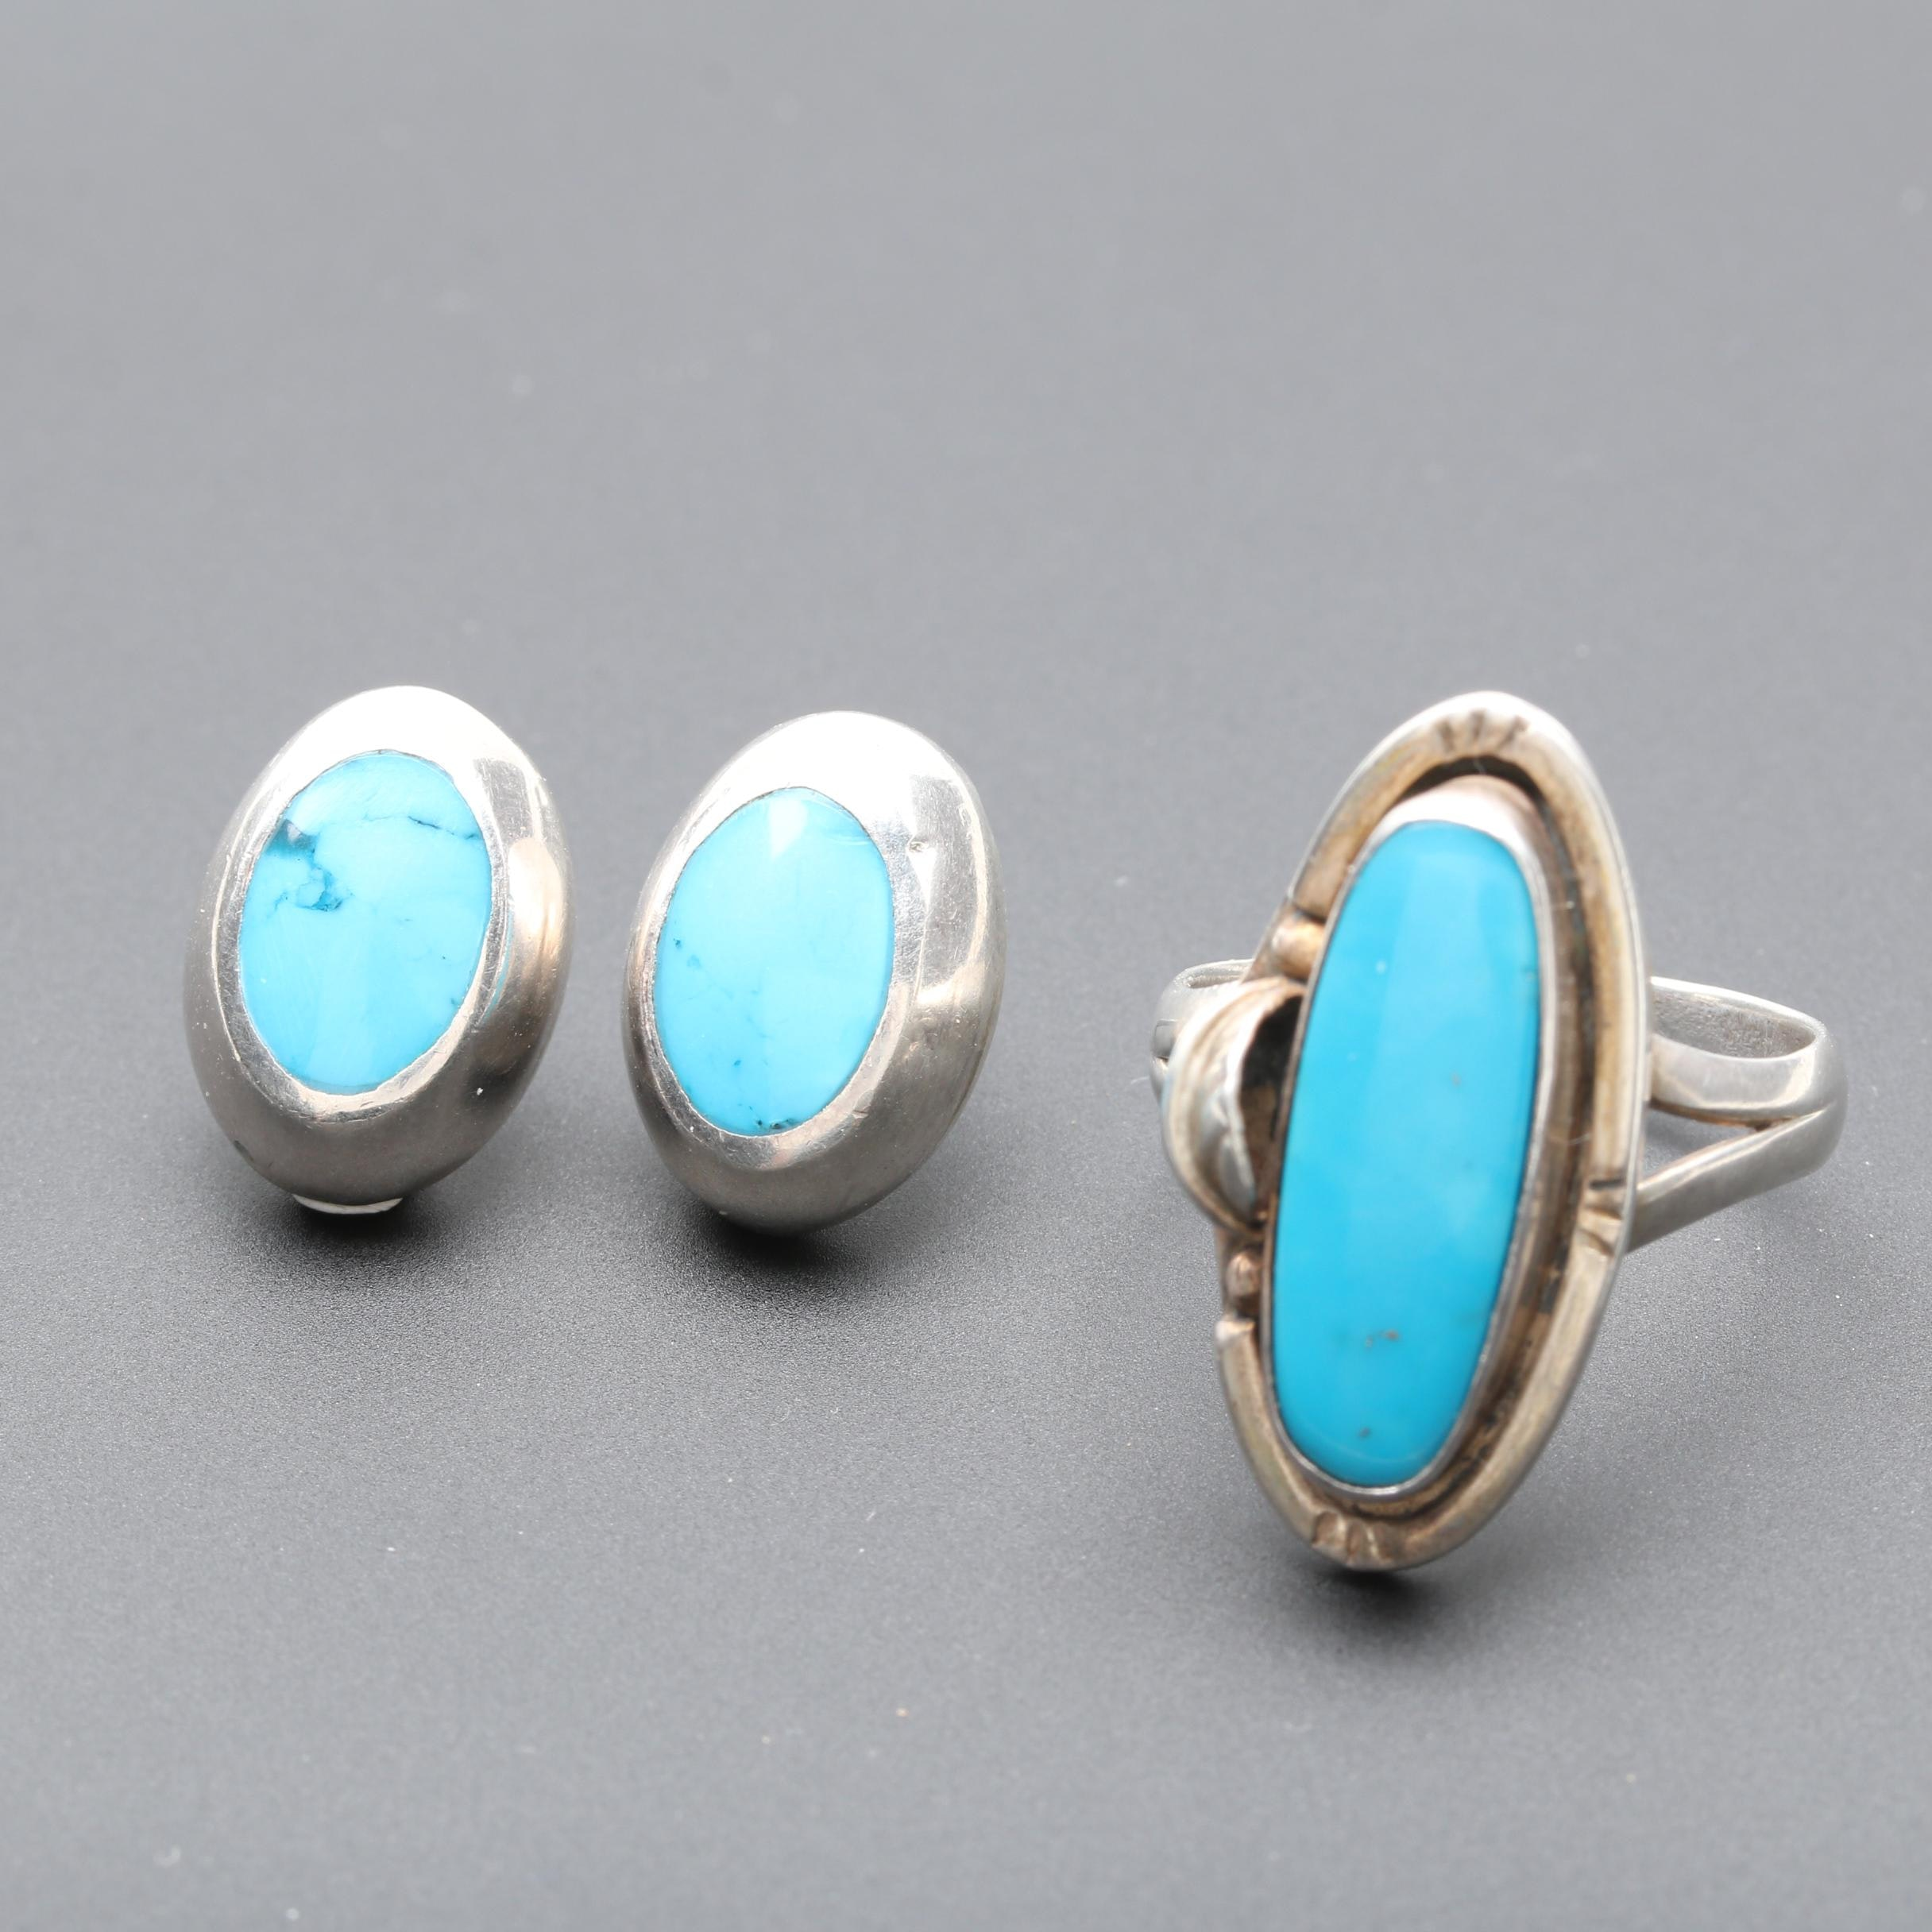 Southwestern Inspired Sterling Silver Ring and Pair of Earrings